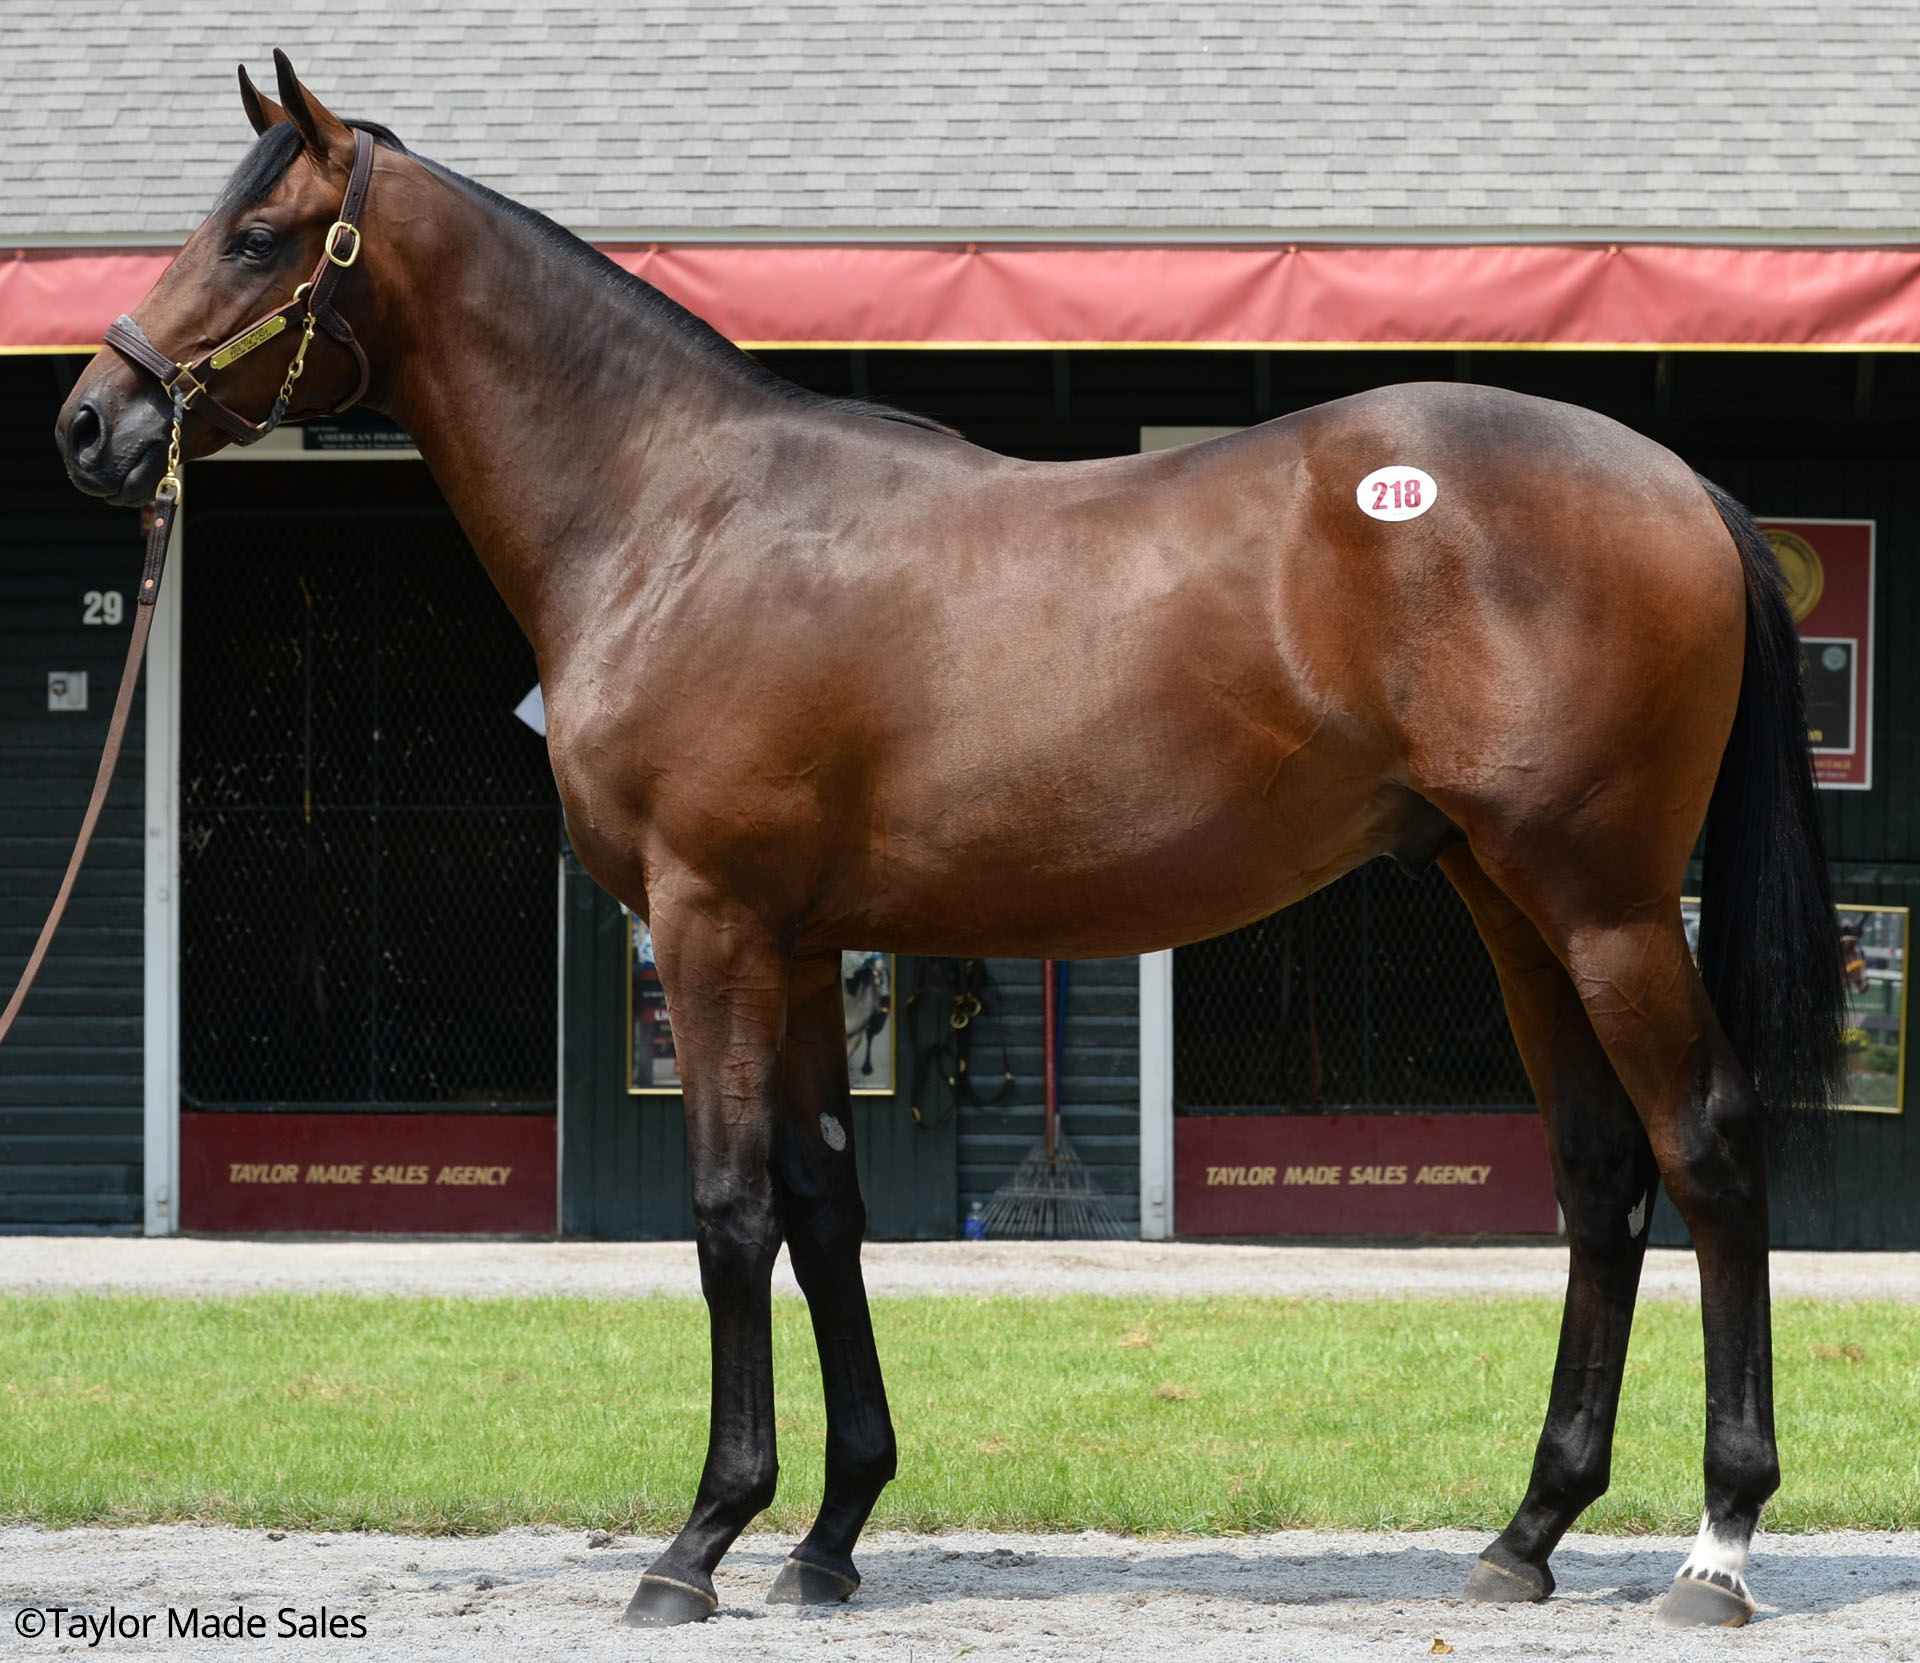 Hip 218, 2017 Fasig-Saratoga Select Sale, Malibu Moon - Kiss the Lady (Quiet American)